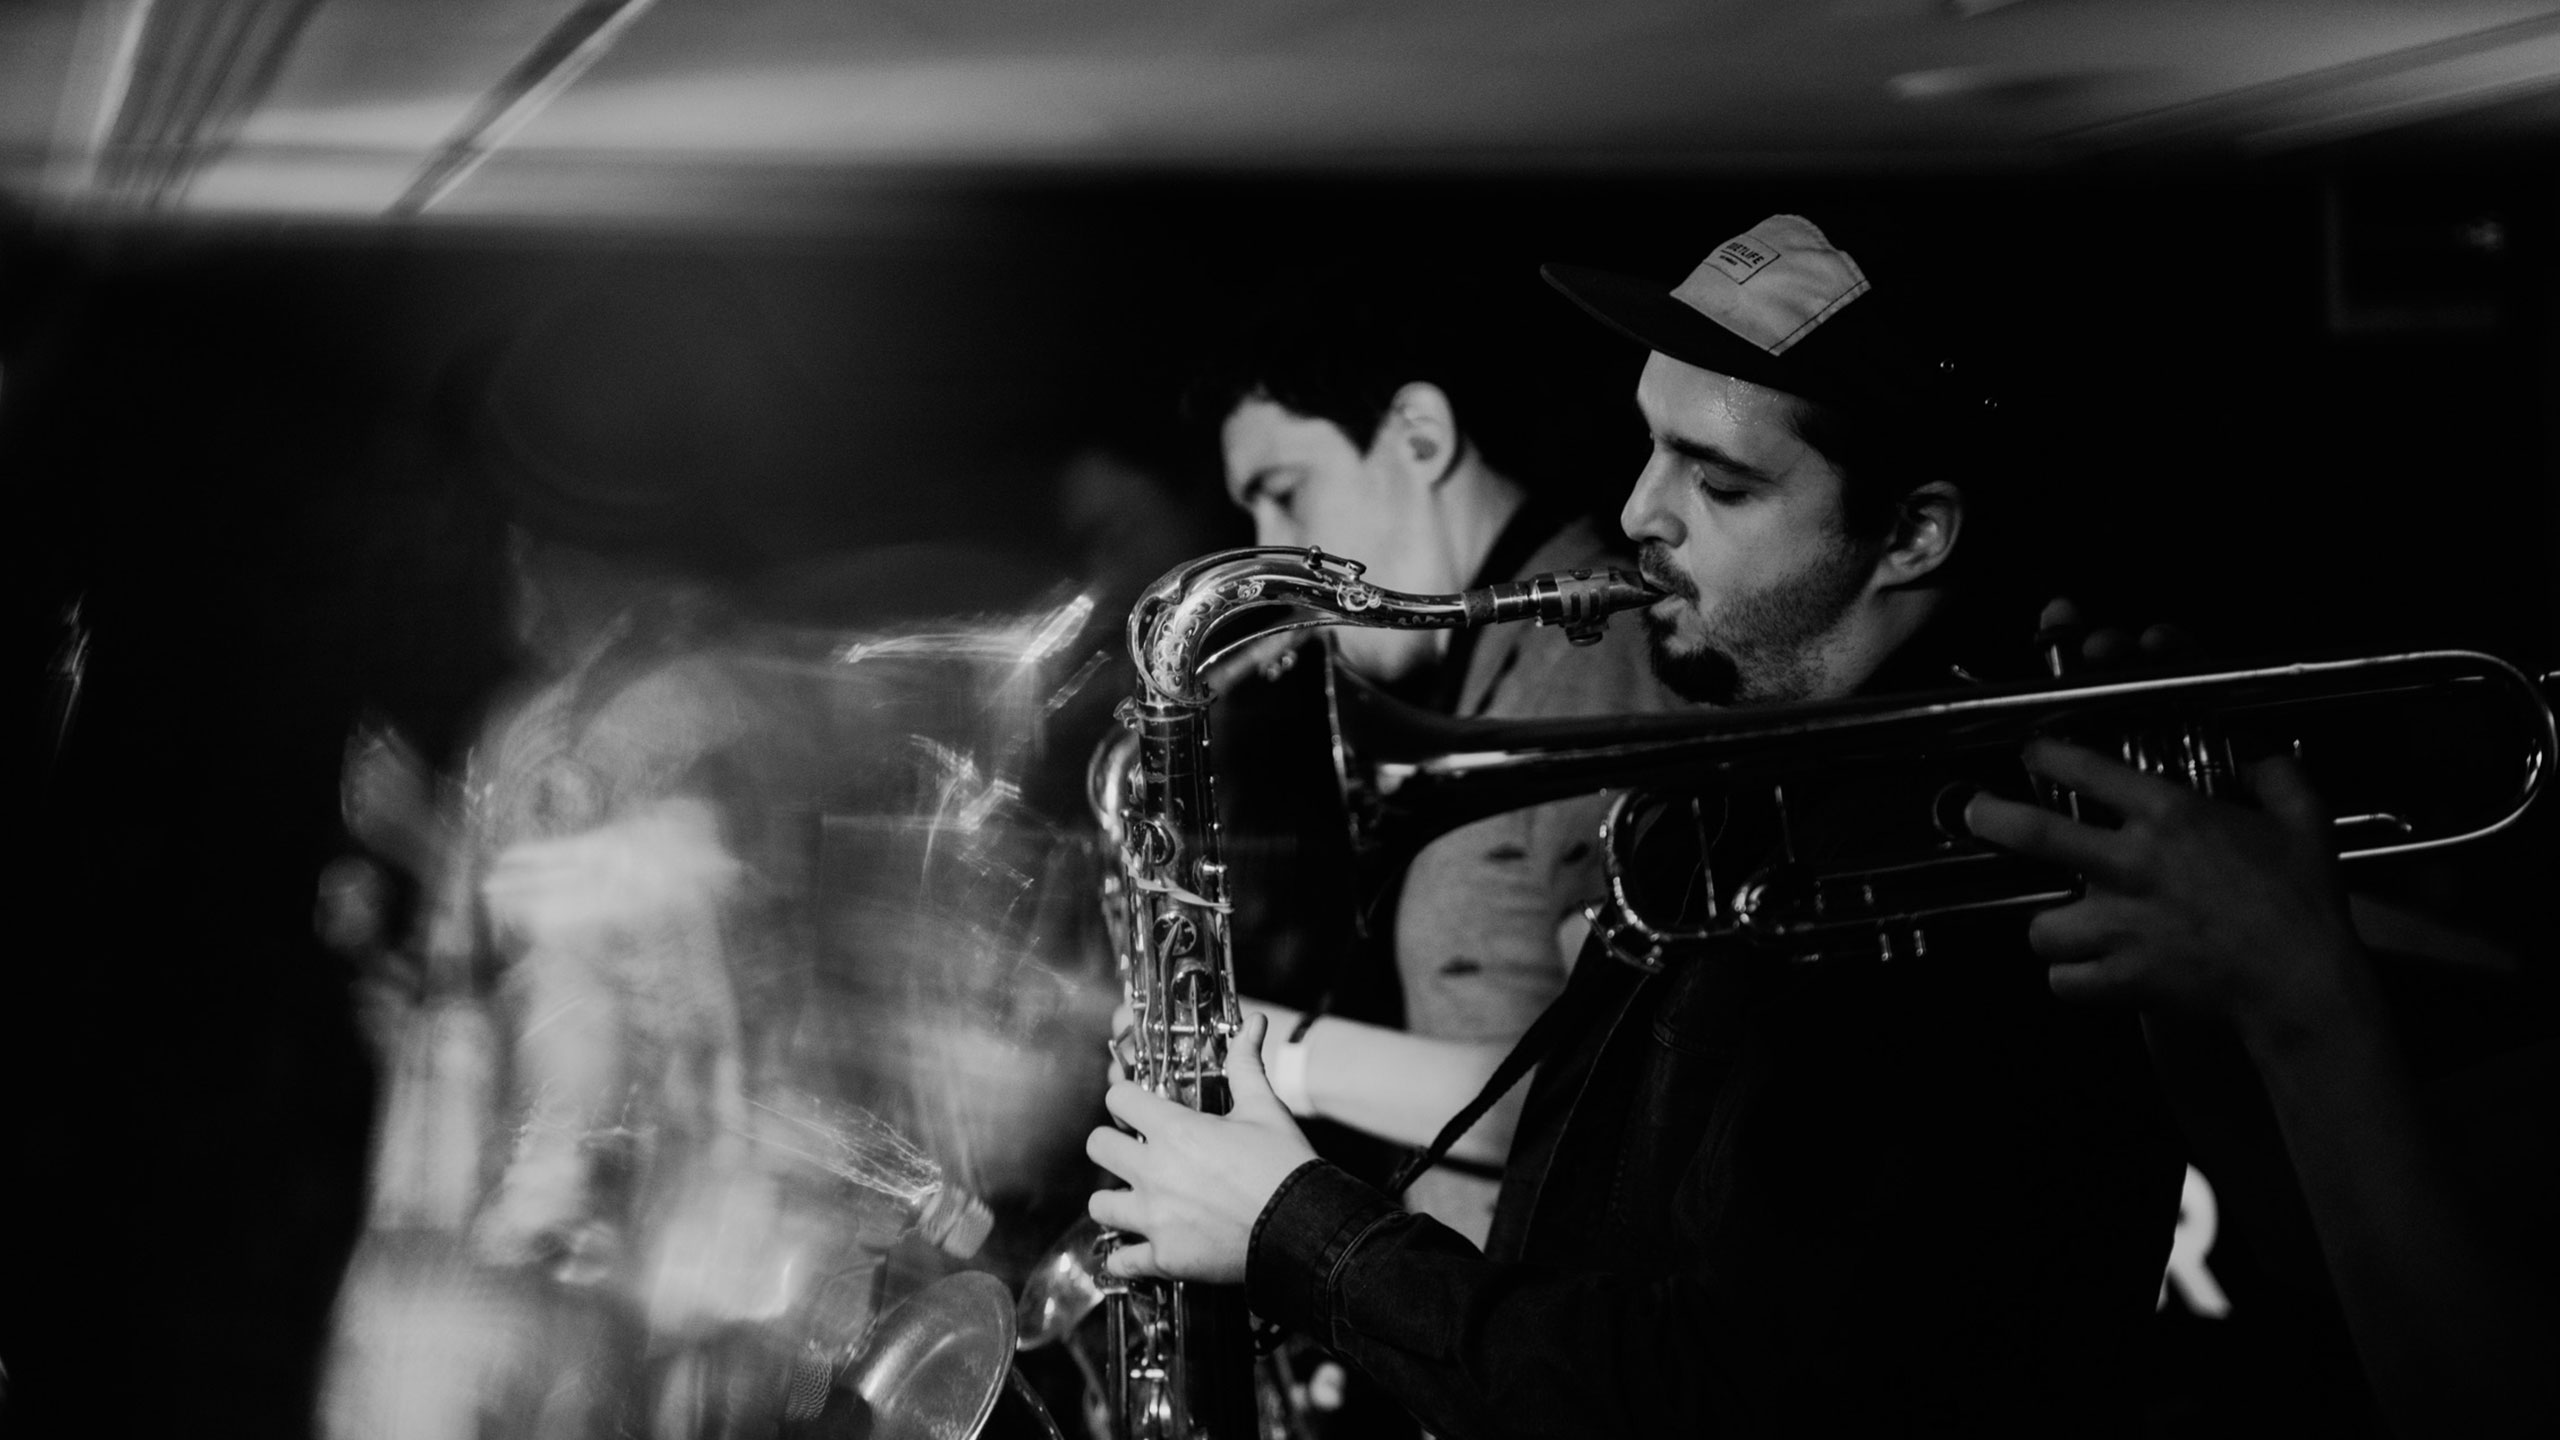 A black and white photo of two saxophonists from Dr Meaker performing live at PRS for Music Presents, with a blurred effect